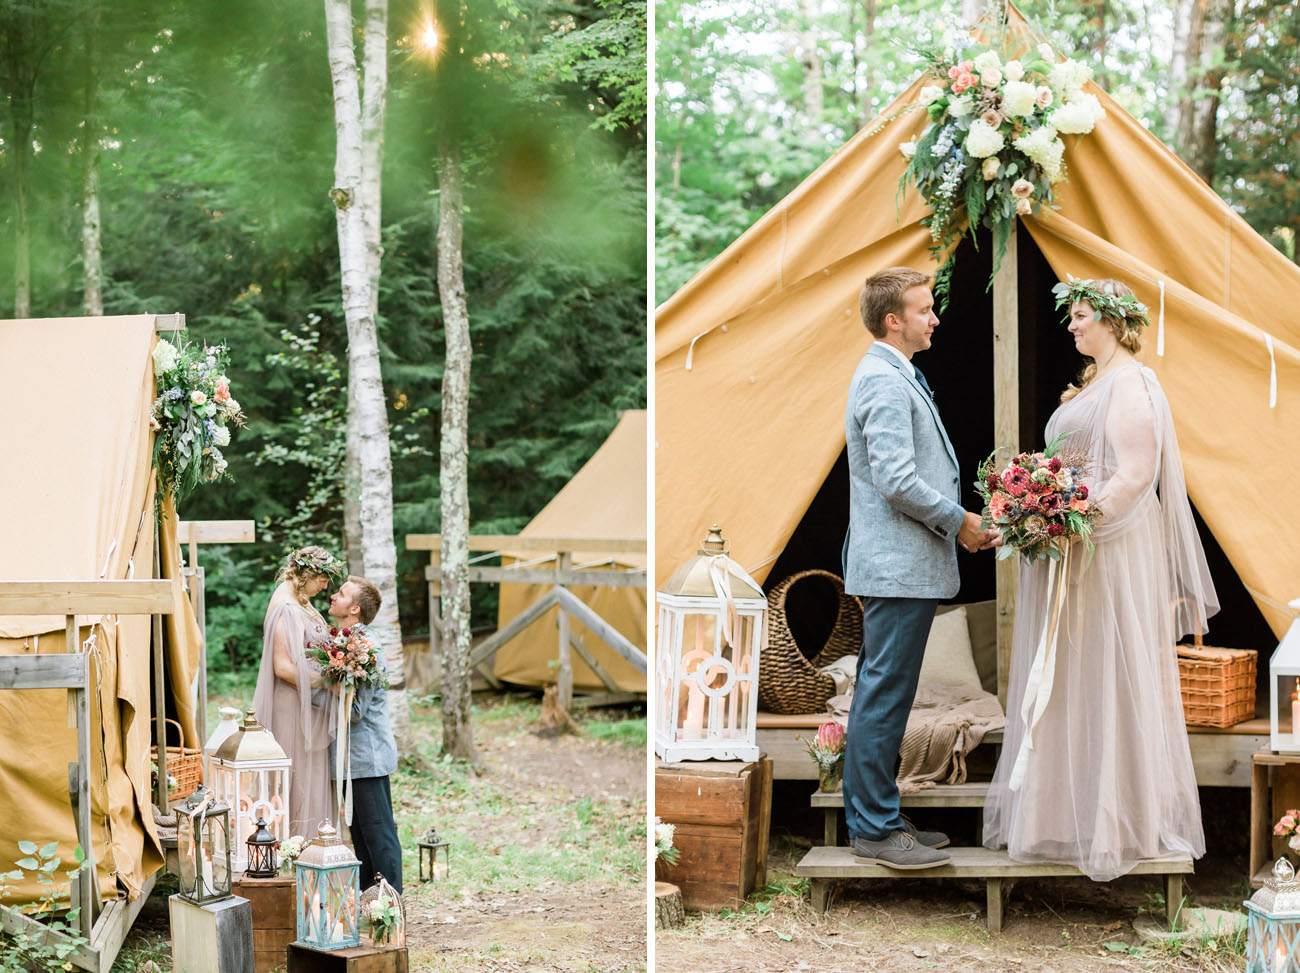 Rustic Camp Elopement